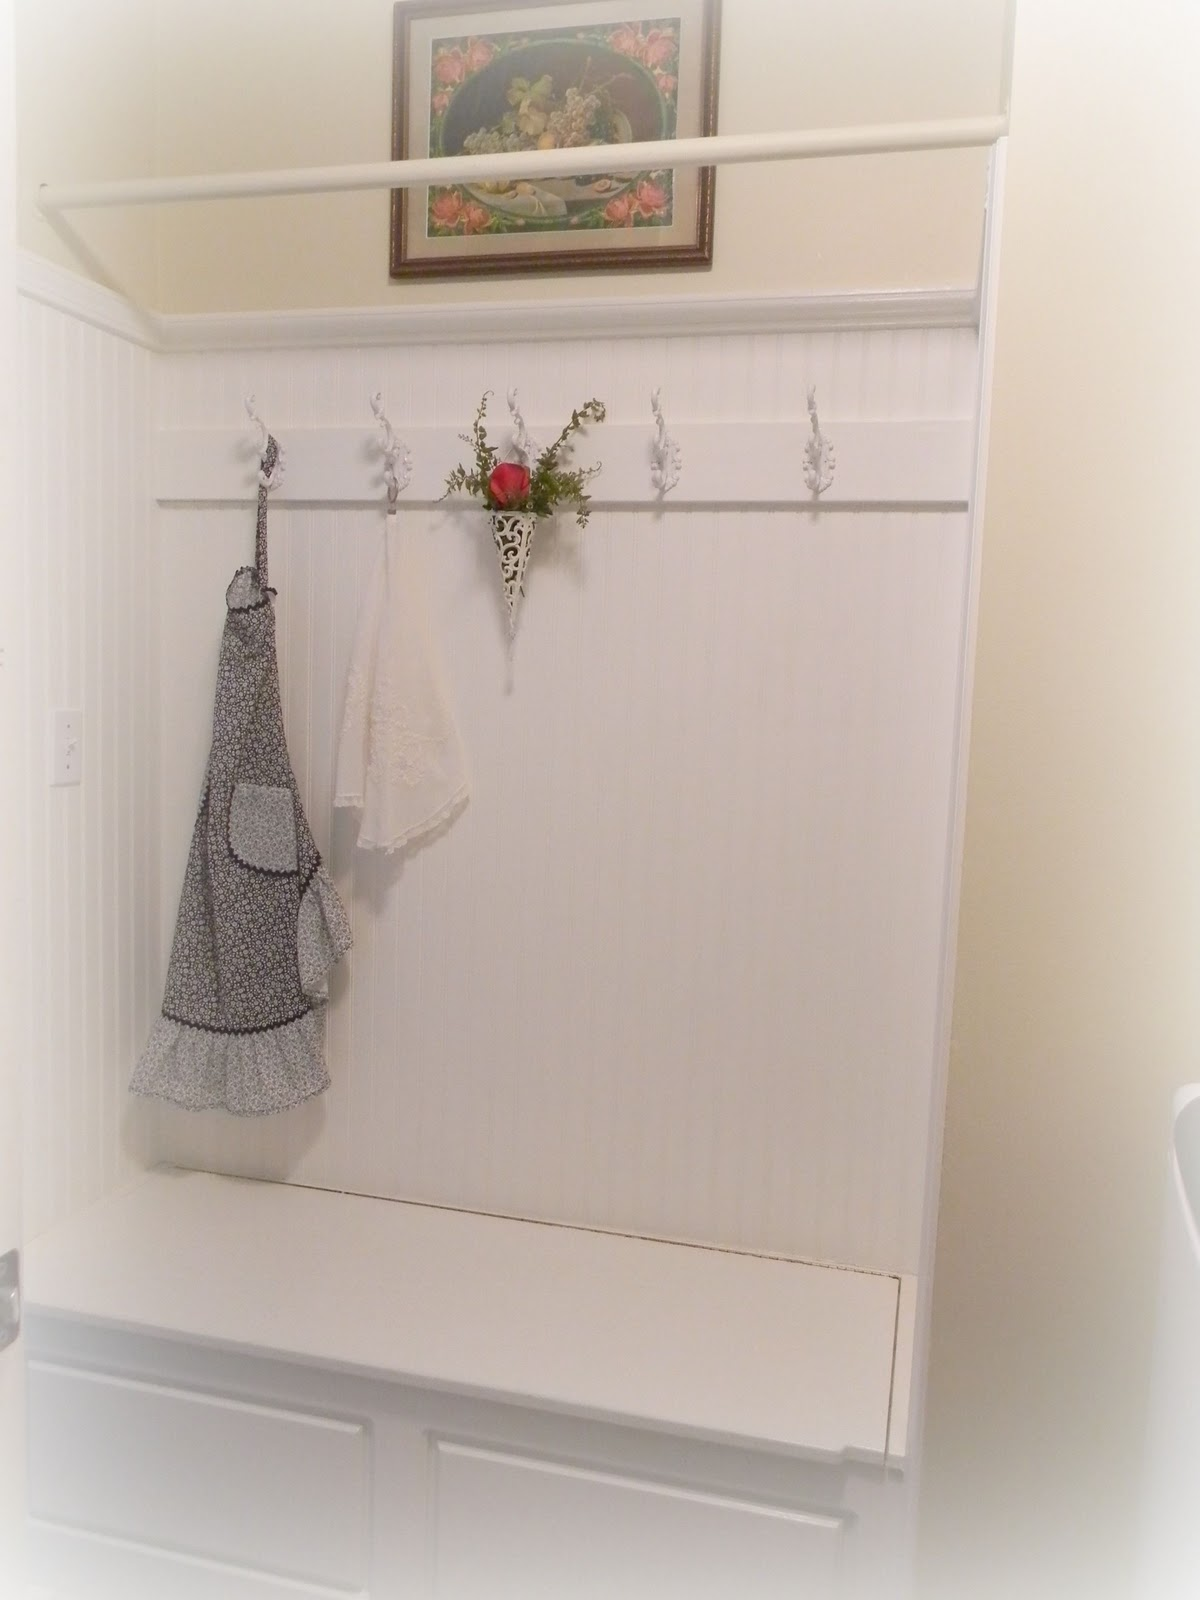 Forever Decorating!: My Laundry Room Transformaion